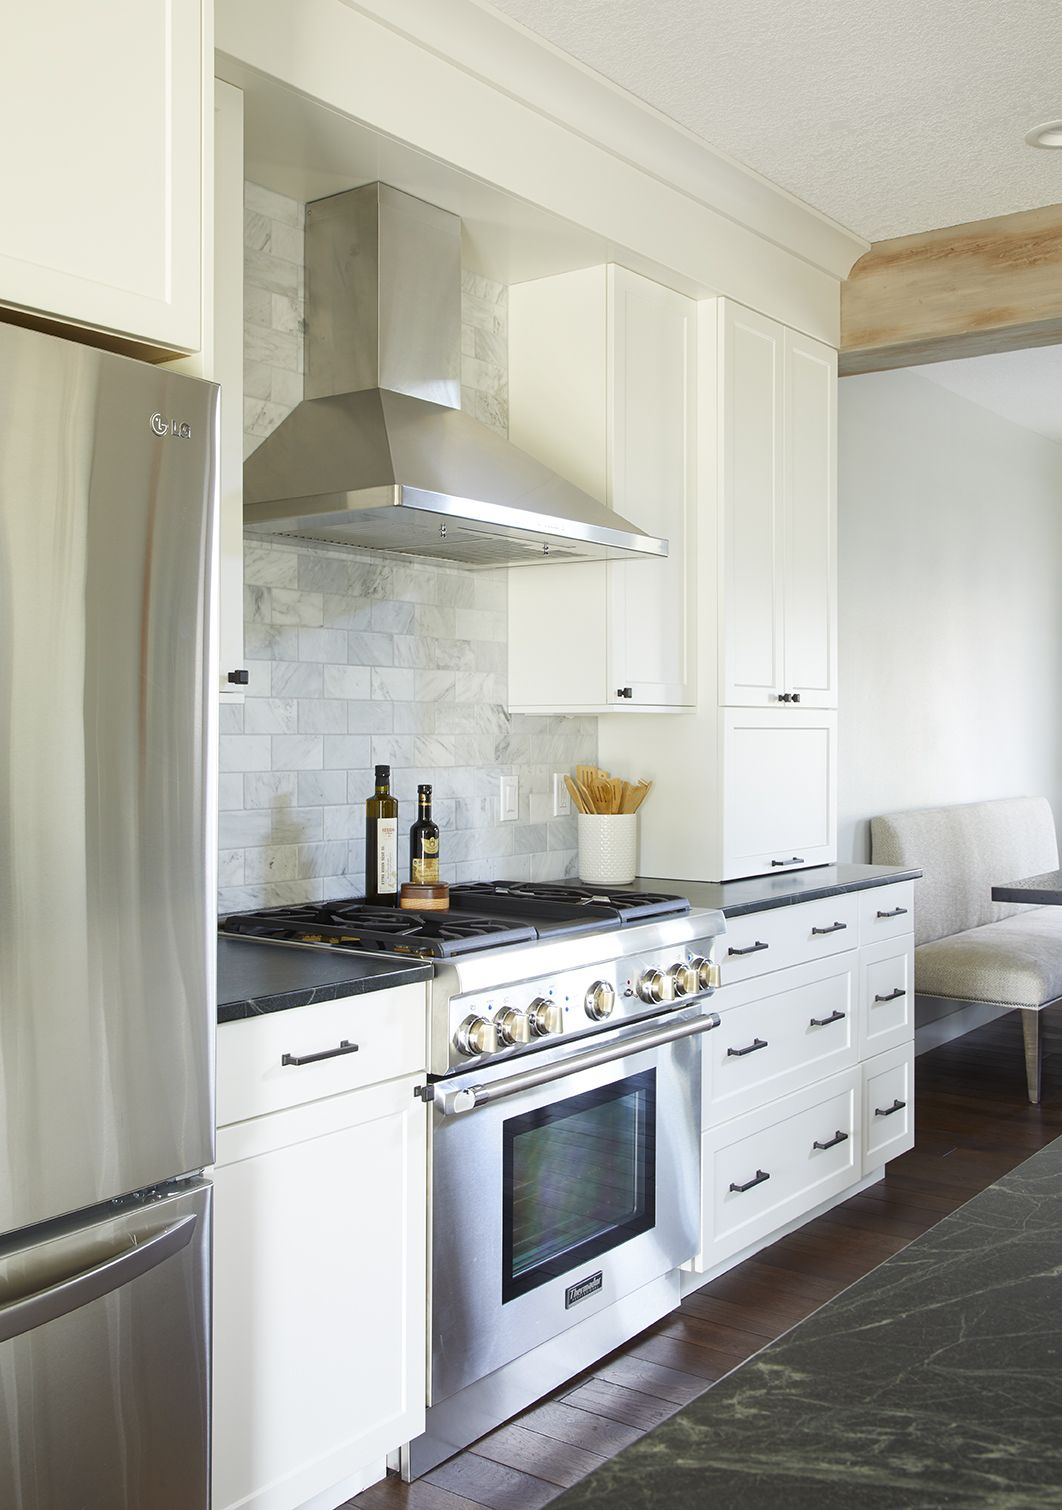 Merging Styles Clean Lined Meets Rustic In This Grimes Iowa Remodel Kitchen Backsplash Trends Replacing Kitchen Countertops Backsplash For White Cabinets